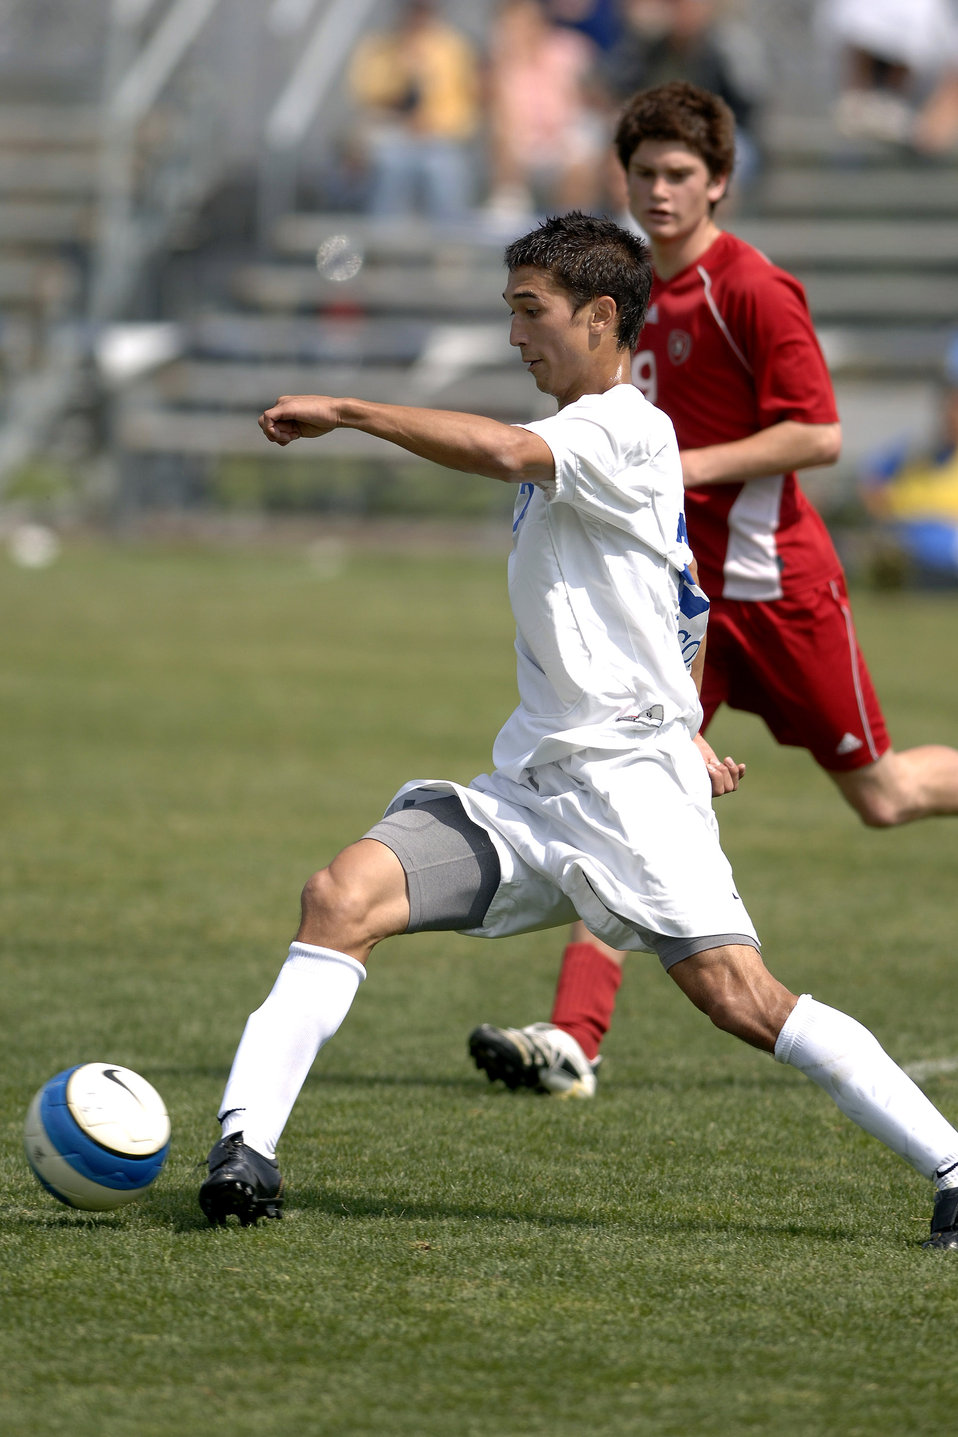 Falcons shut out St. Francis in soccer action